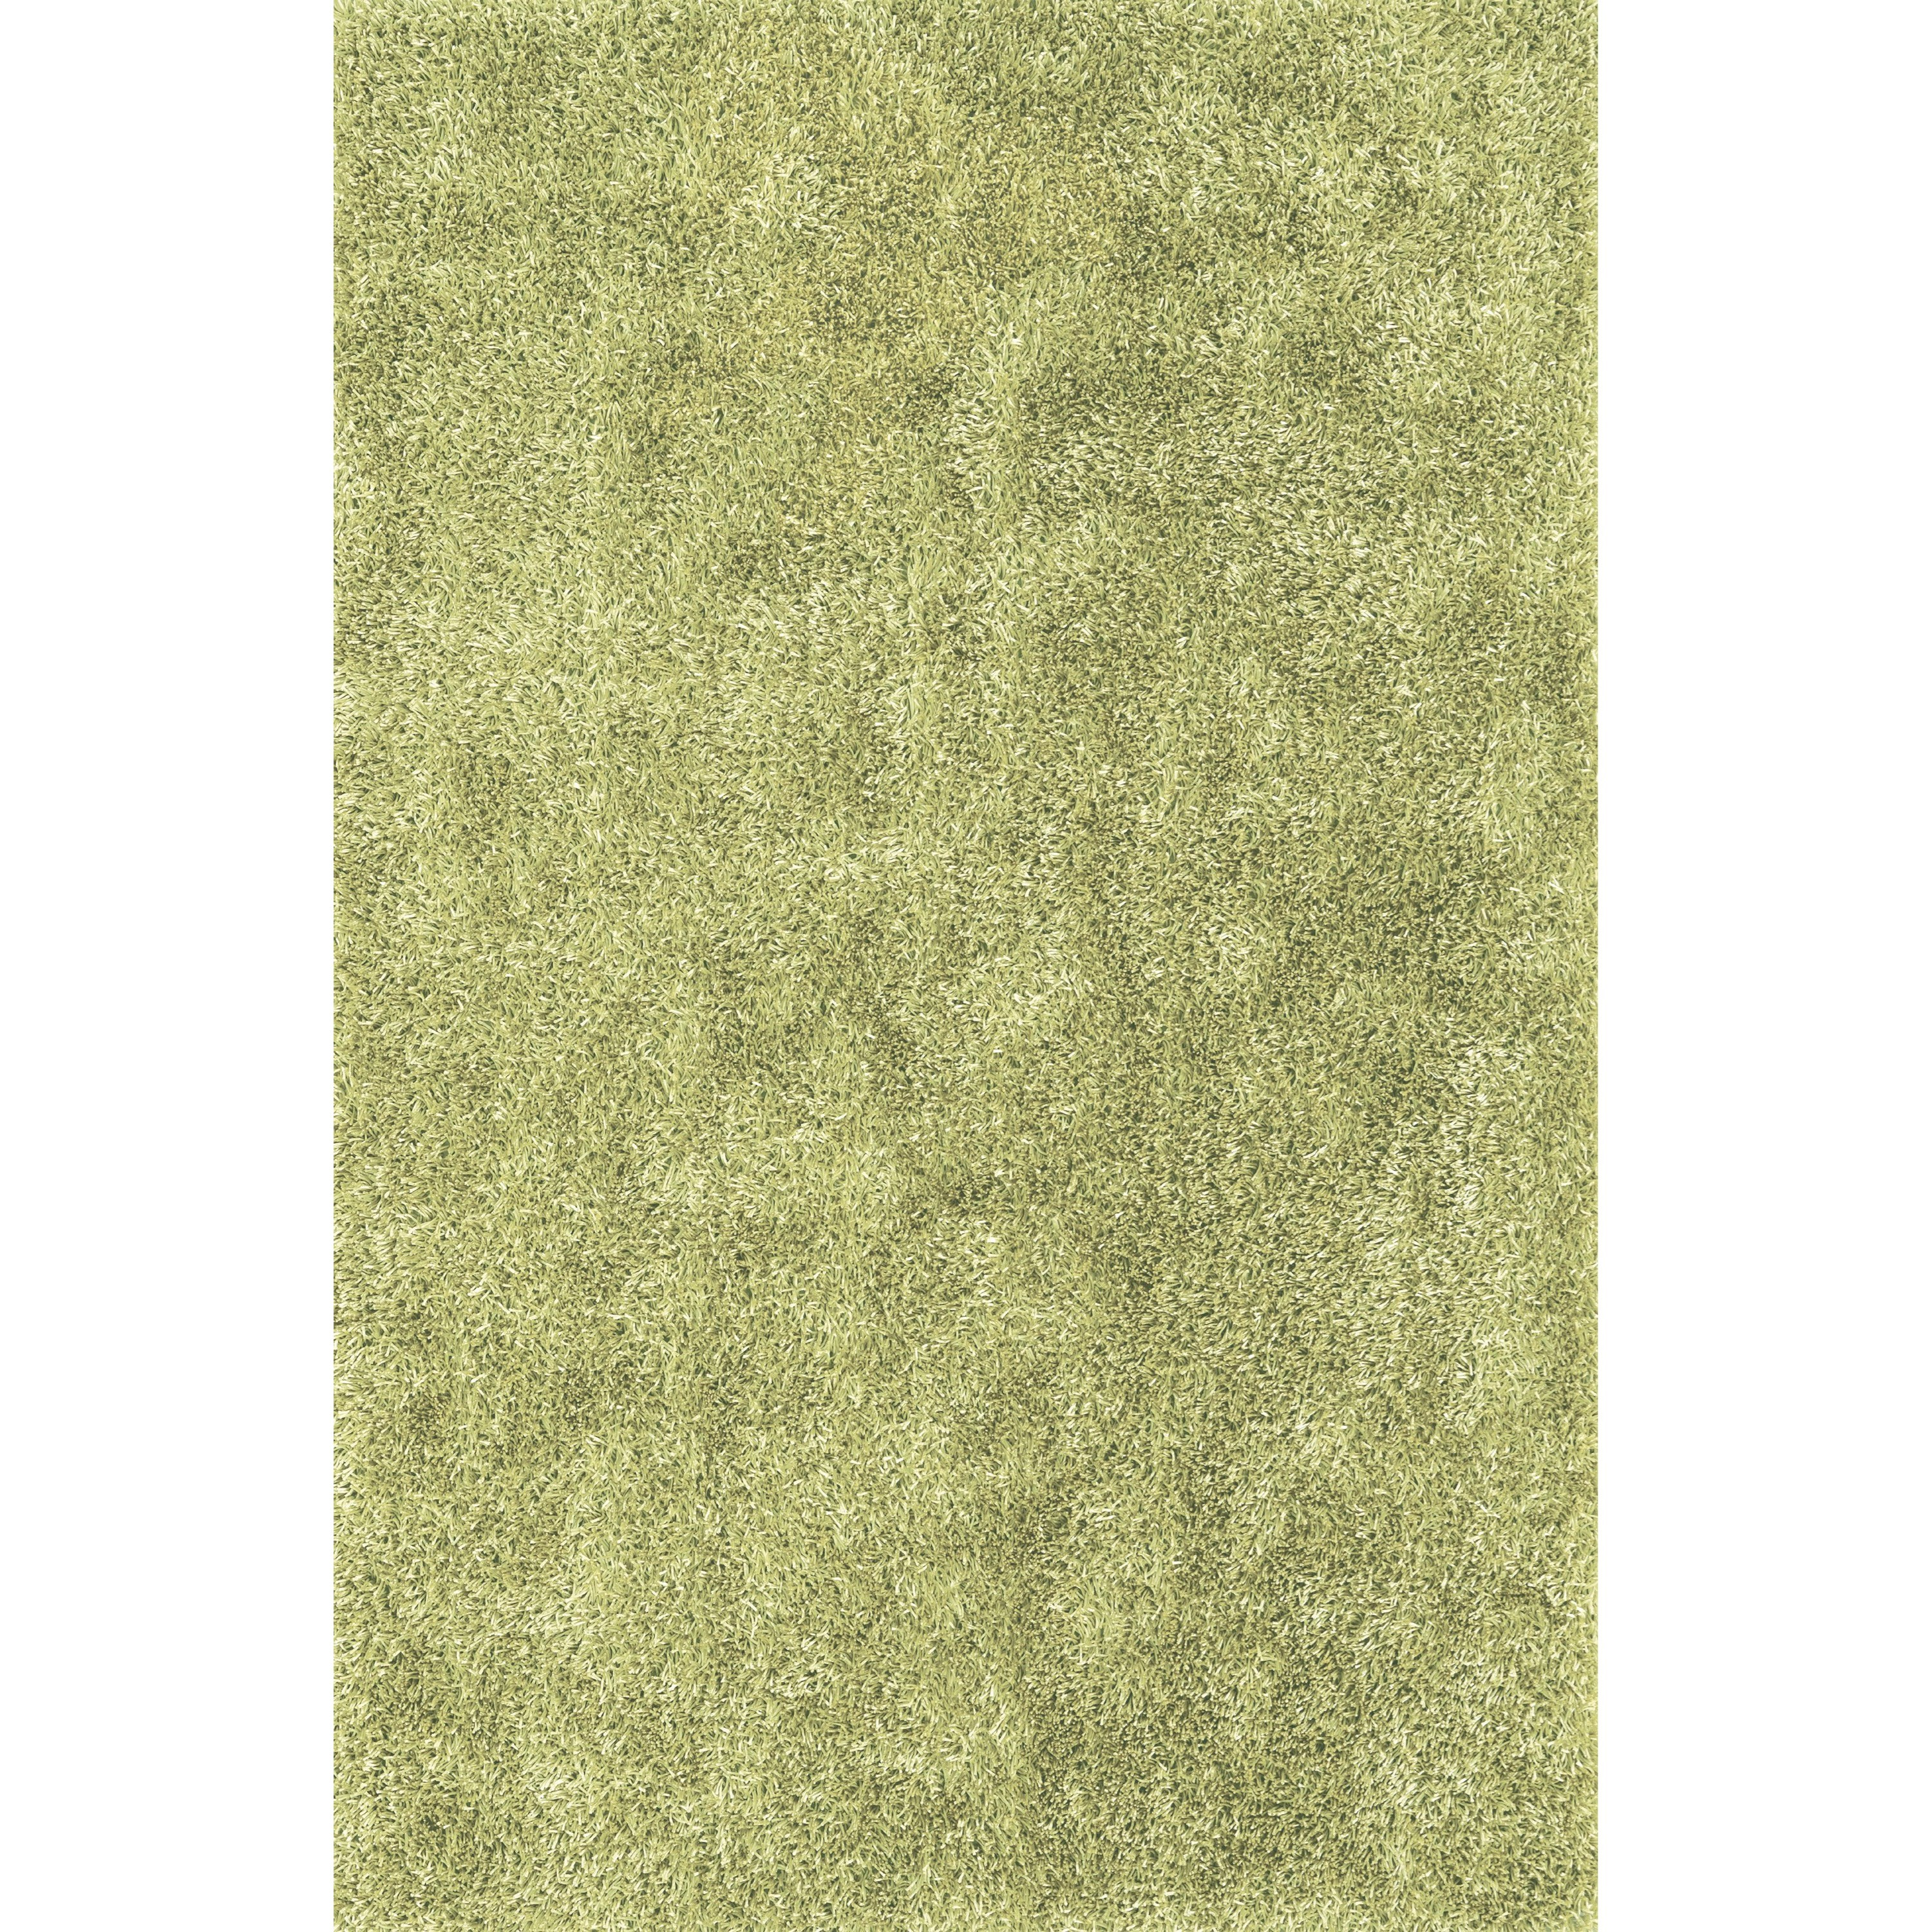 Dalyn Illusions Willow 9'X13' Rug - Item Number: IL69WI9X13